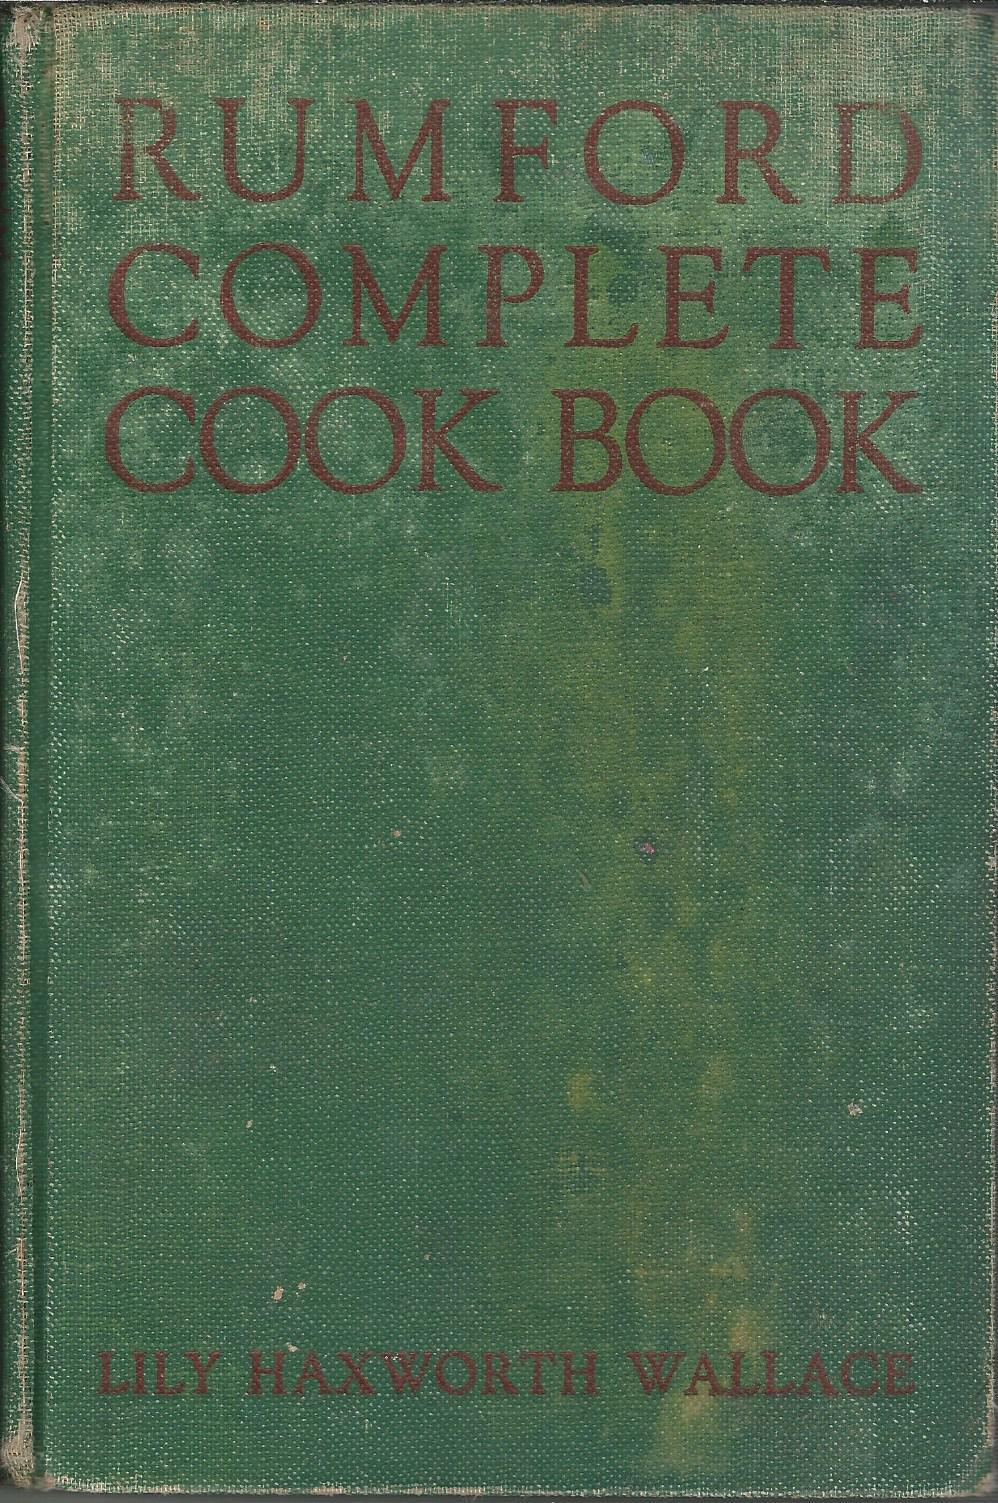 Image for Rumford Complete Cook Book.